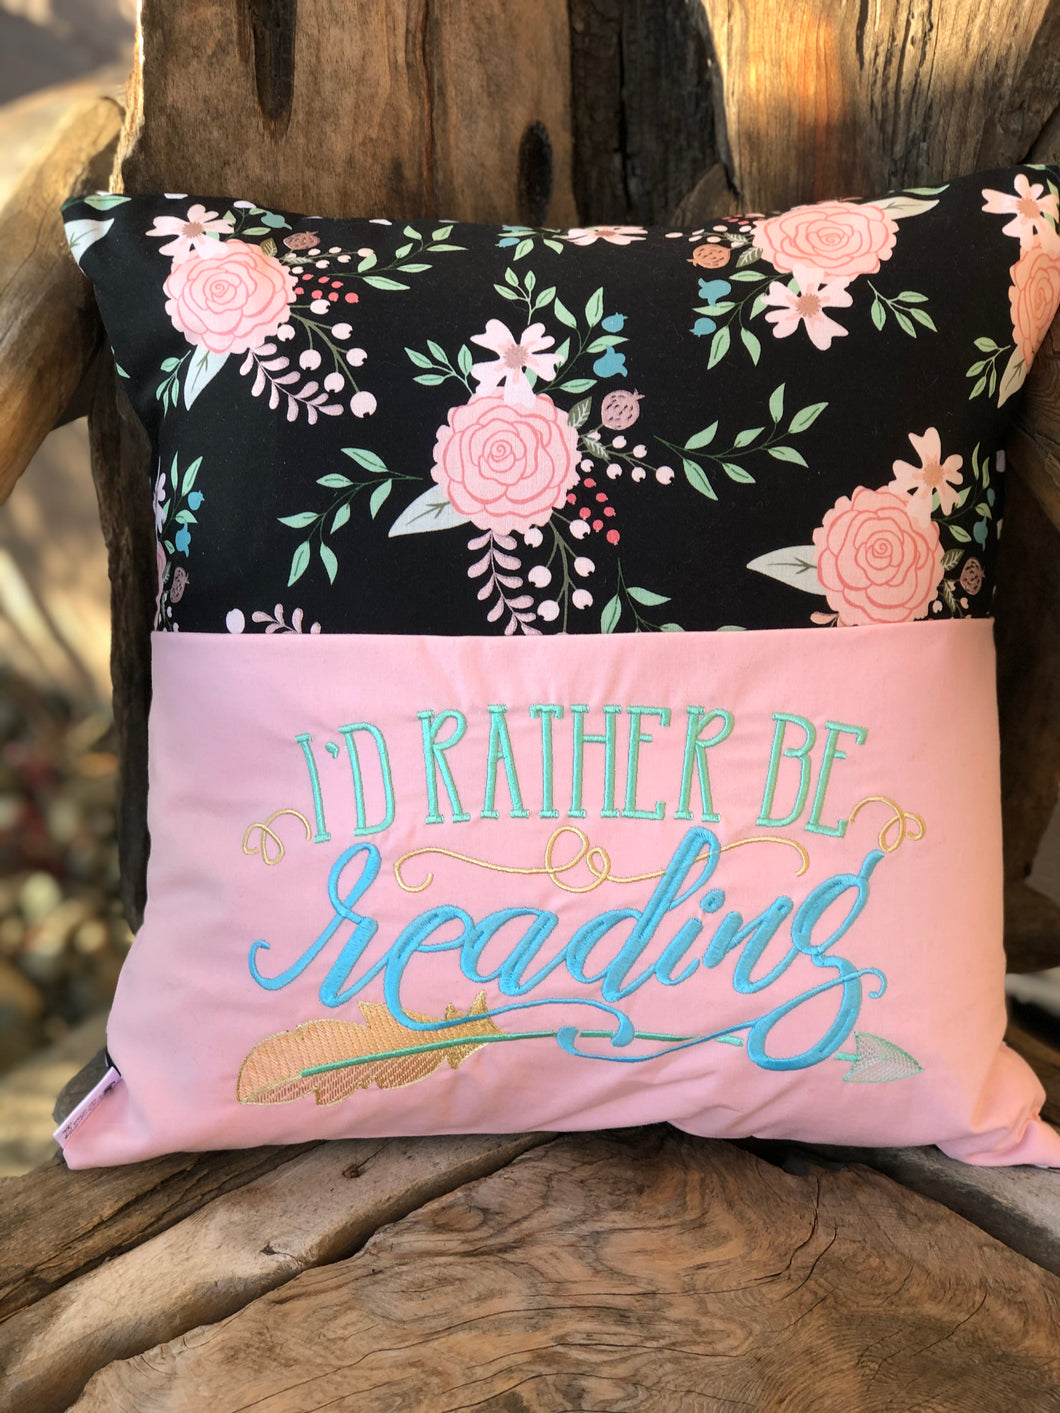 Floral Reading Pillow - Black - Rather be reading saying - with pillow insert